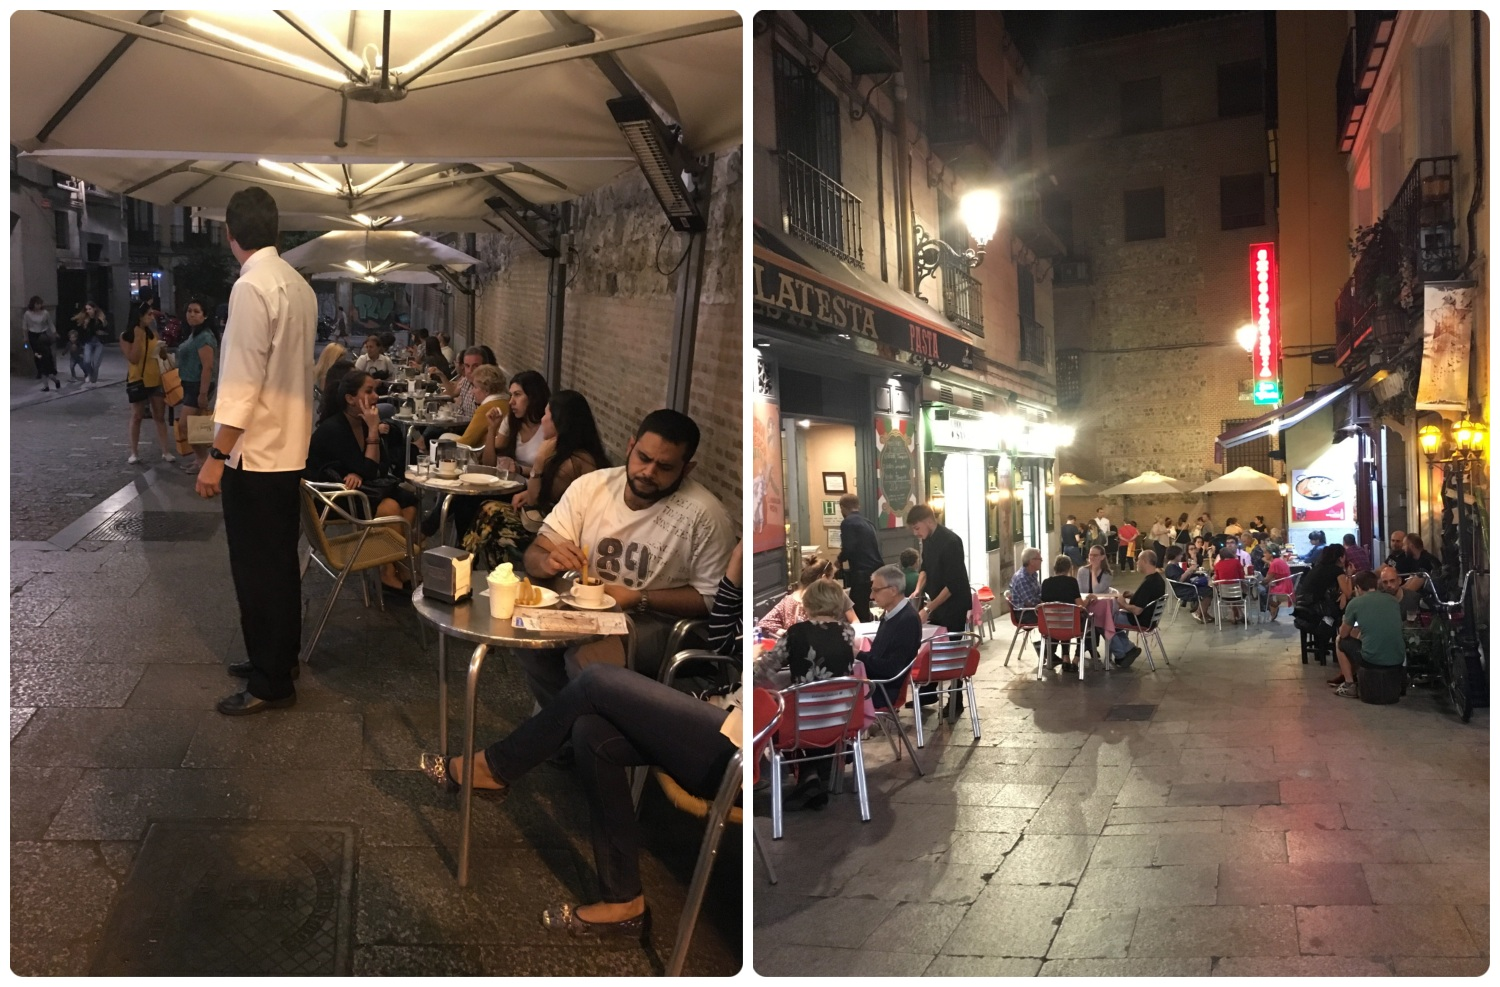 The night was just starting in Madrid, Spain when we made our way to Chocolateria San Gines for churros, porras, and hot chocolate. There was seating outside, but it was full (left image), and the narrow street leading to Chocolateria San Gines was full of people enjoying the evening (right image).